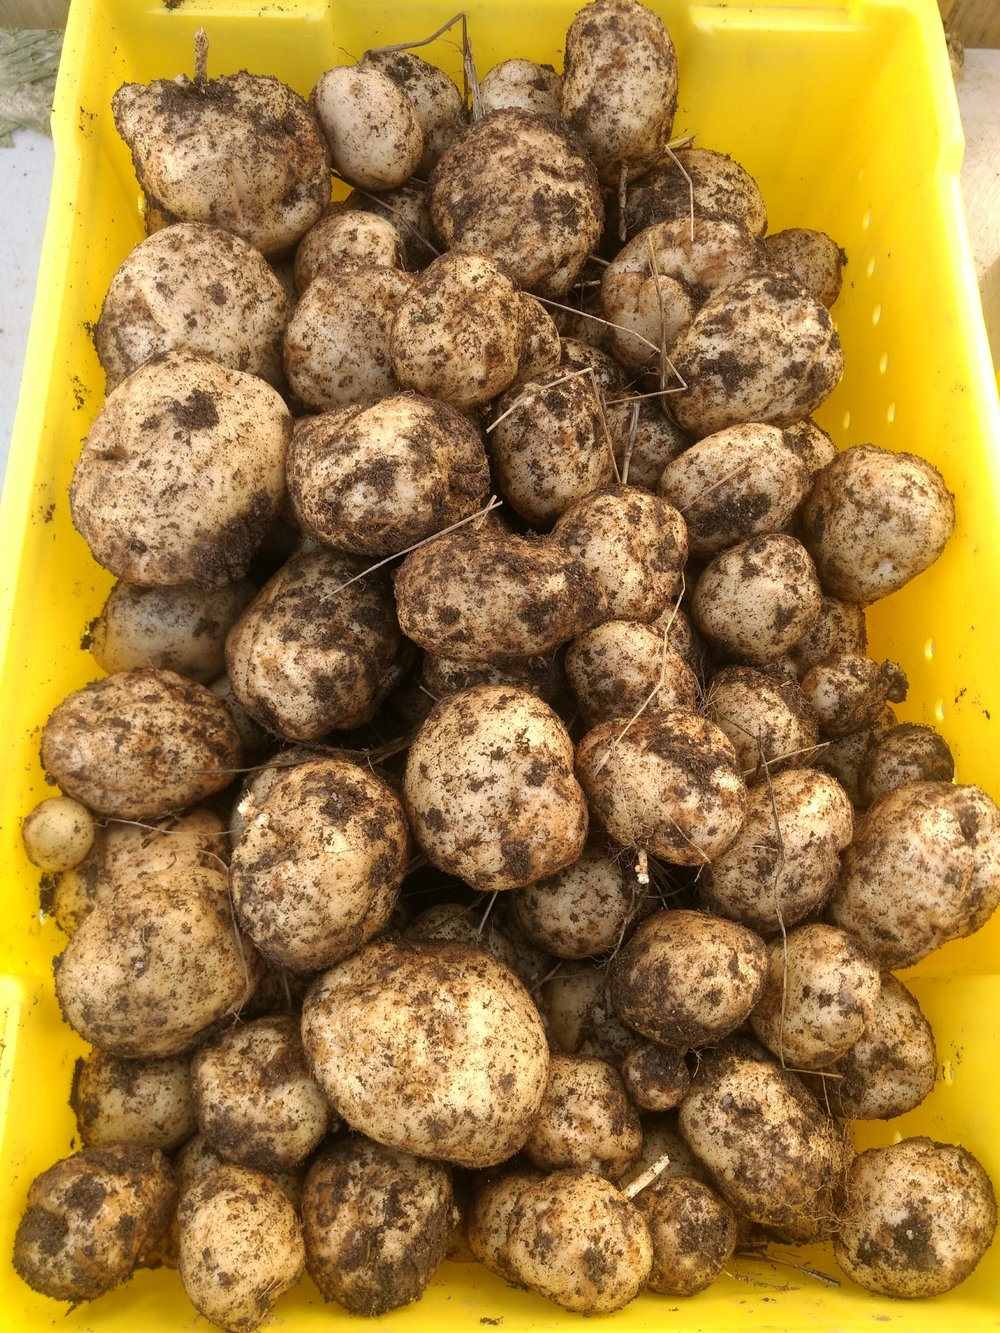 Pick up your quart of white potatoes grown in rich Lancaster County soil at any of our two weekly markets: Clark Park Farmers Market (Thurs. 3pm-7pm) and Overbrook Farmers Market (Sat. 9am-1pm).